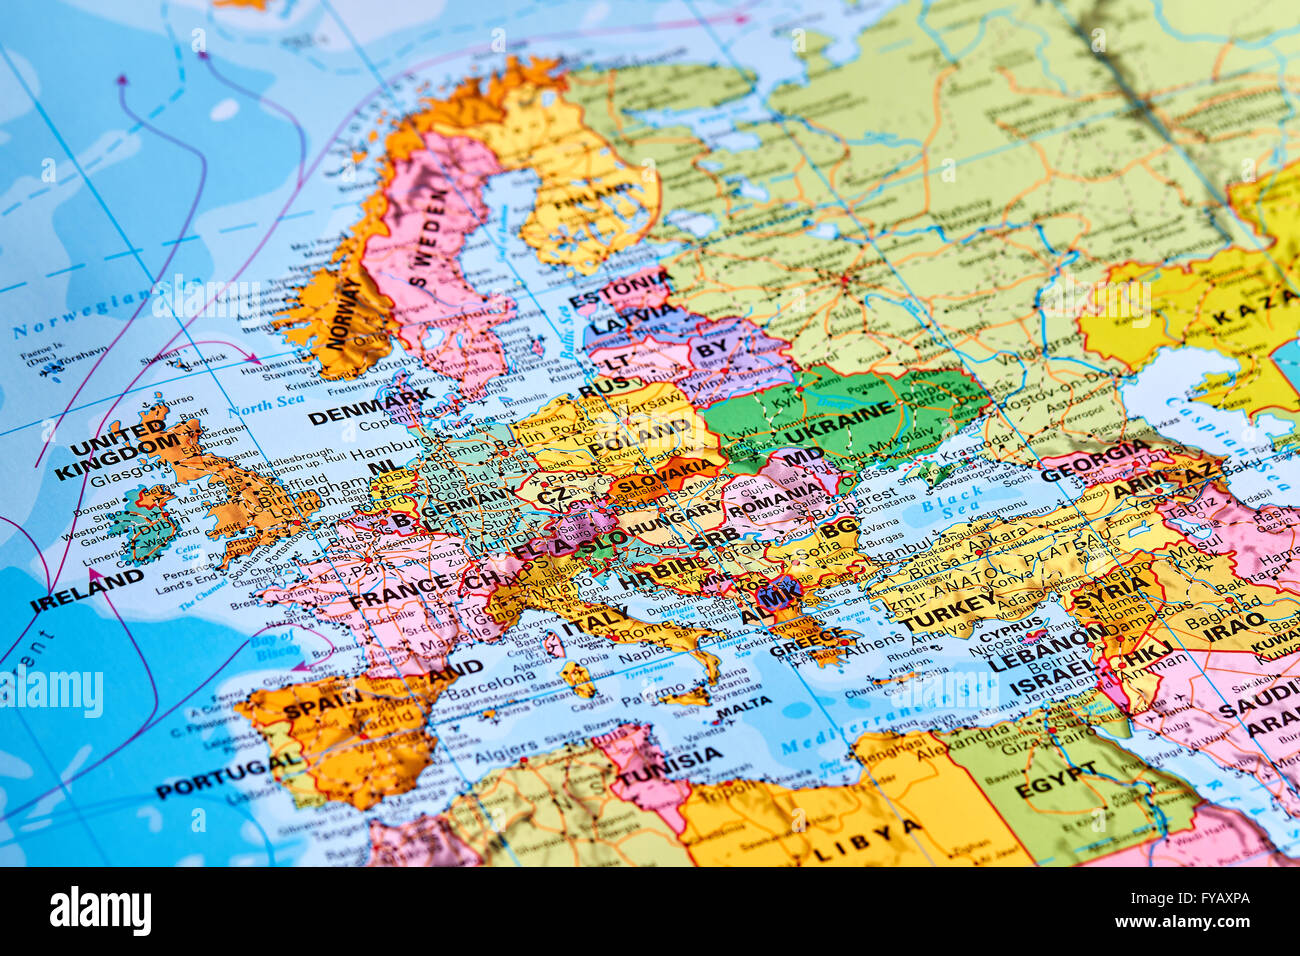 Europe Continent on the World Map - Stock Image